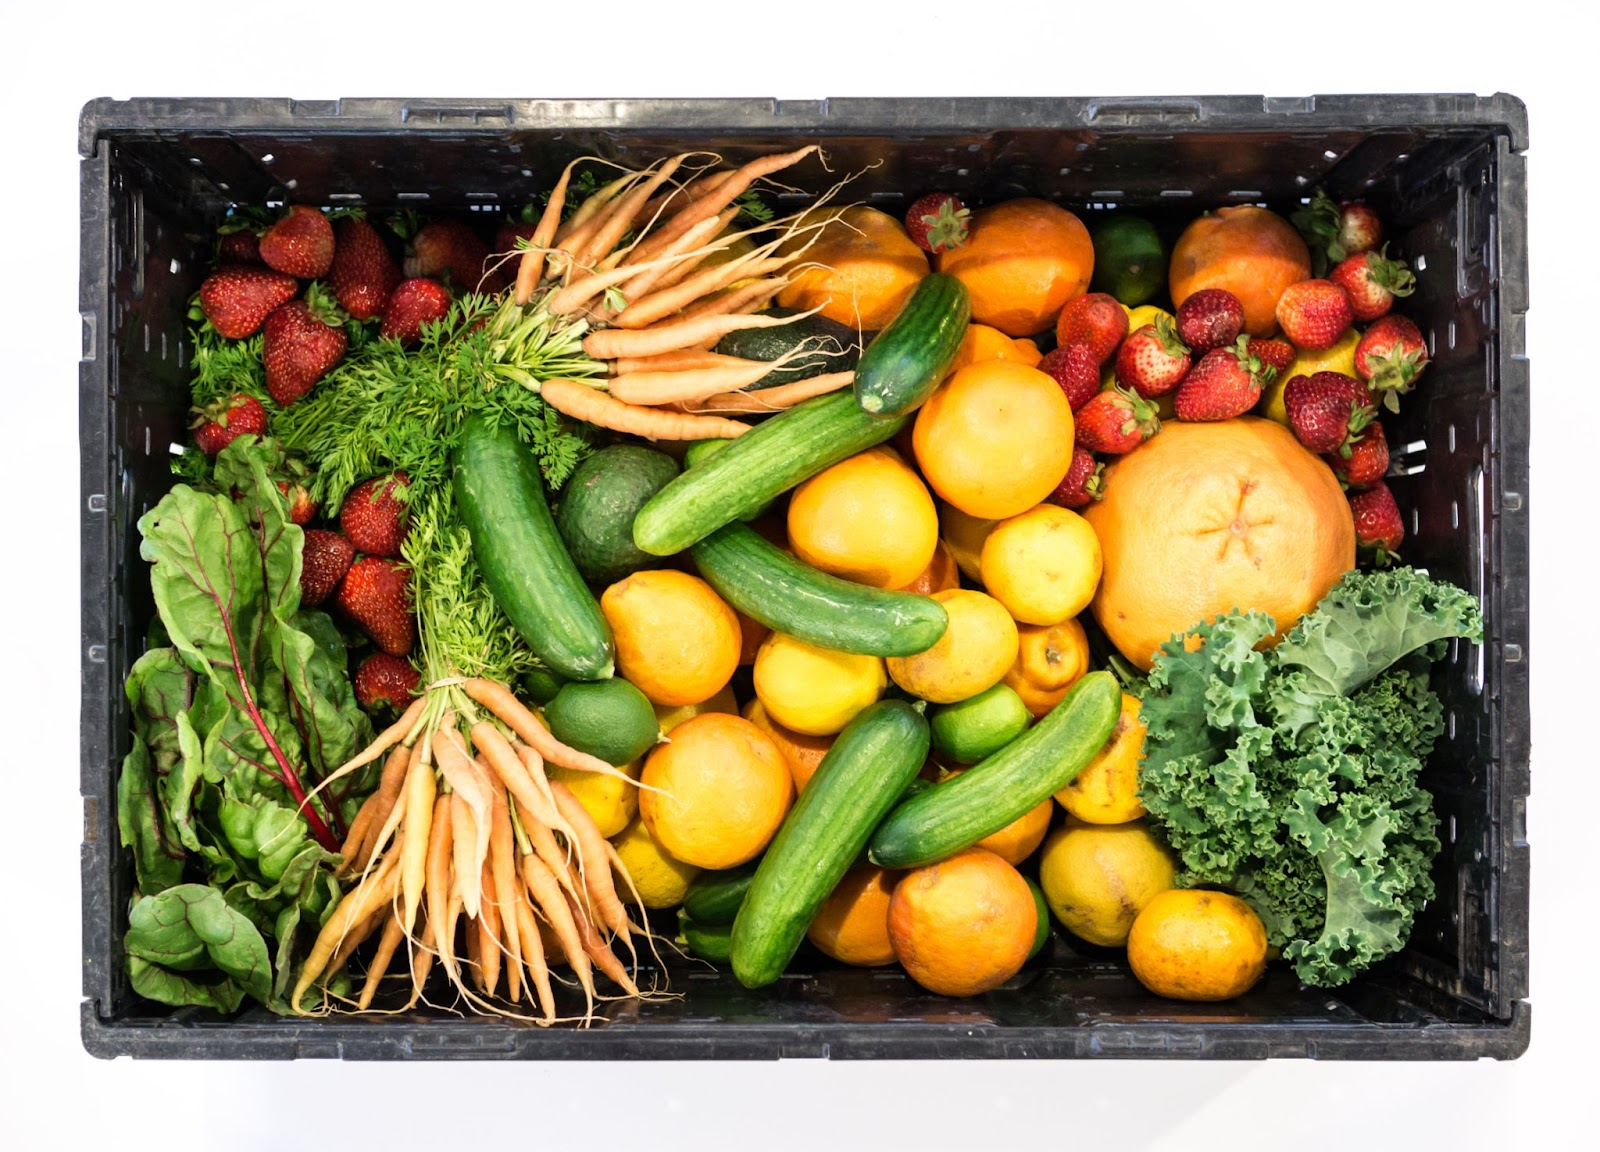 Follow a healthy diet have a lower risk of gallbladder disease